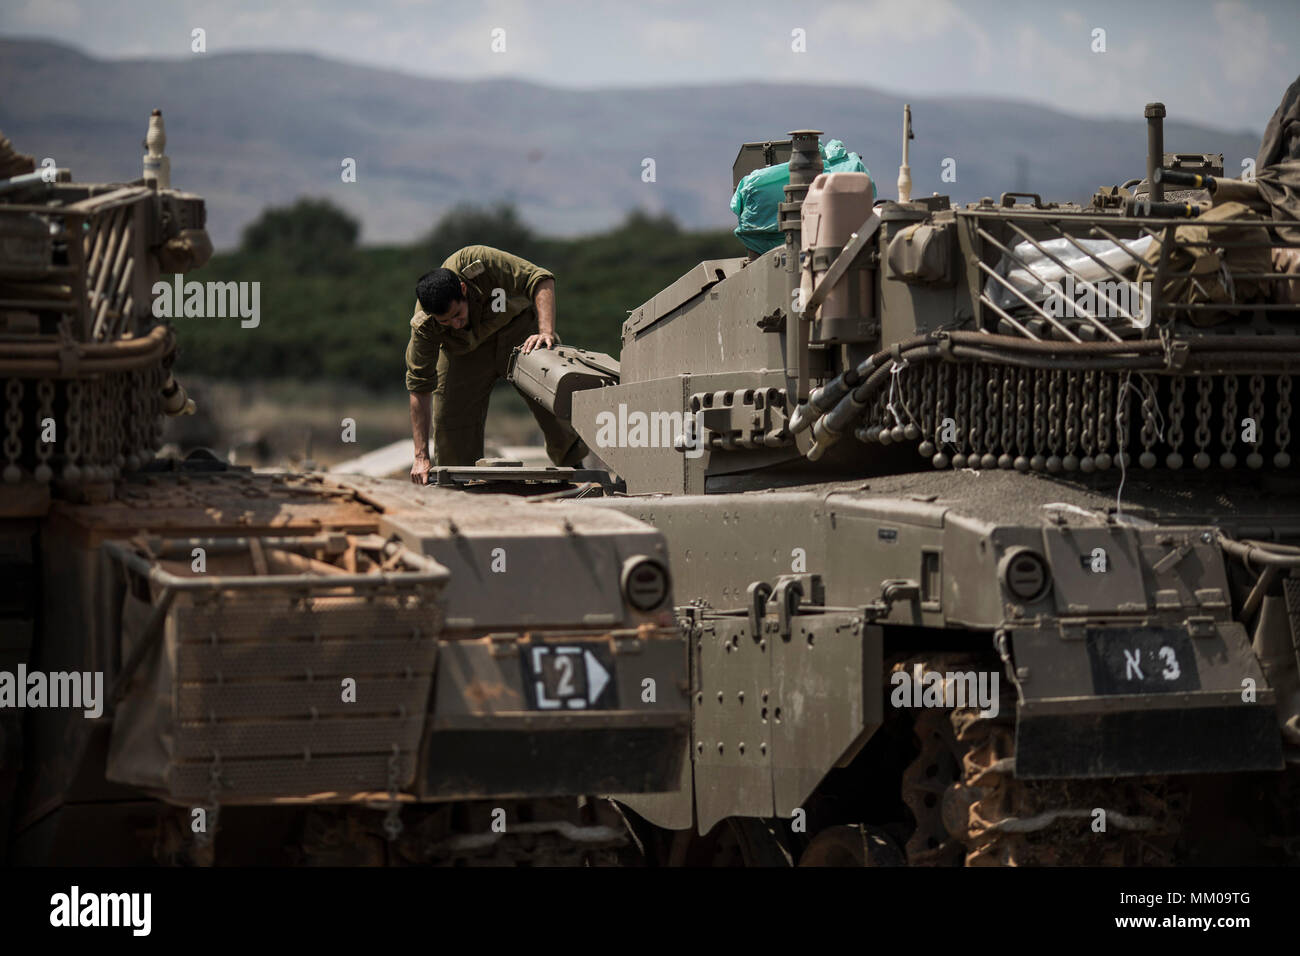 Golan Heights, Israel. 09th May, 2018. An Israeli soldier on top of a Merkava Mark IV tank that deployed along the border with Syria, in Golan Heights, Israel, 09 May 2018. Israel's army is mobilizing reservists due to concerns about a possible attacks by Iranian forces in Syria. Credit: Ilia Yefimovich/dpa/Alamy Live News - Stock Image